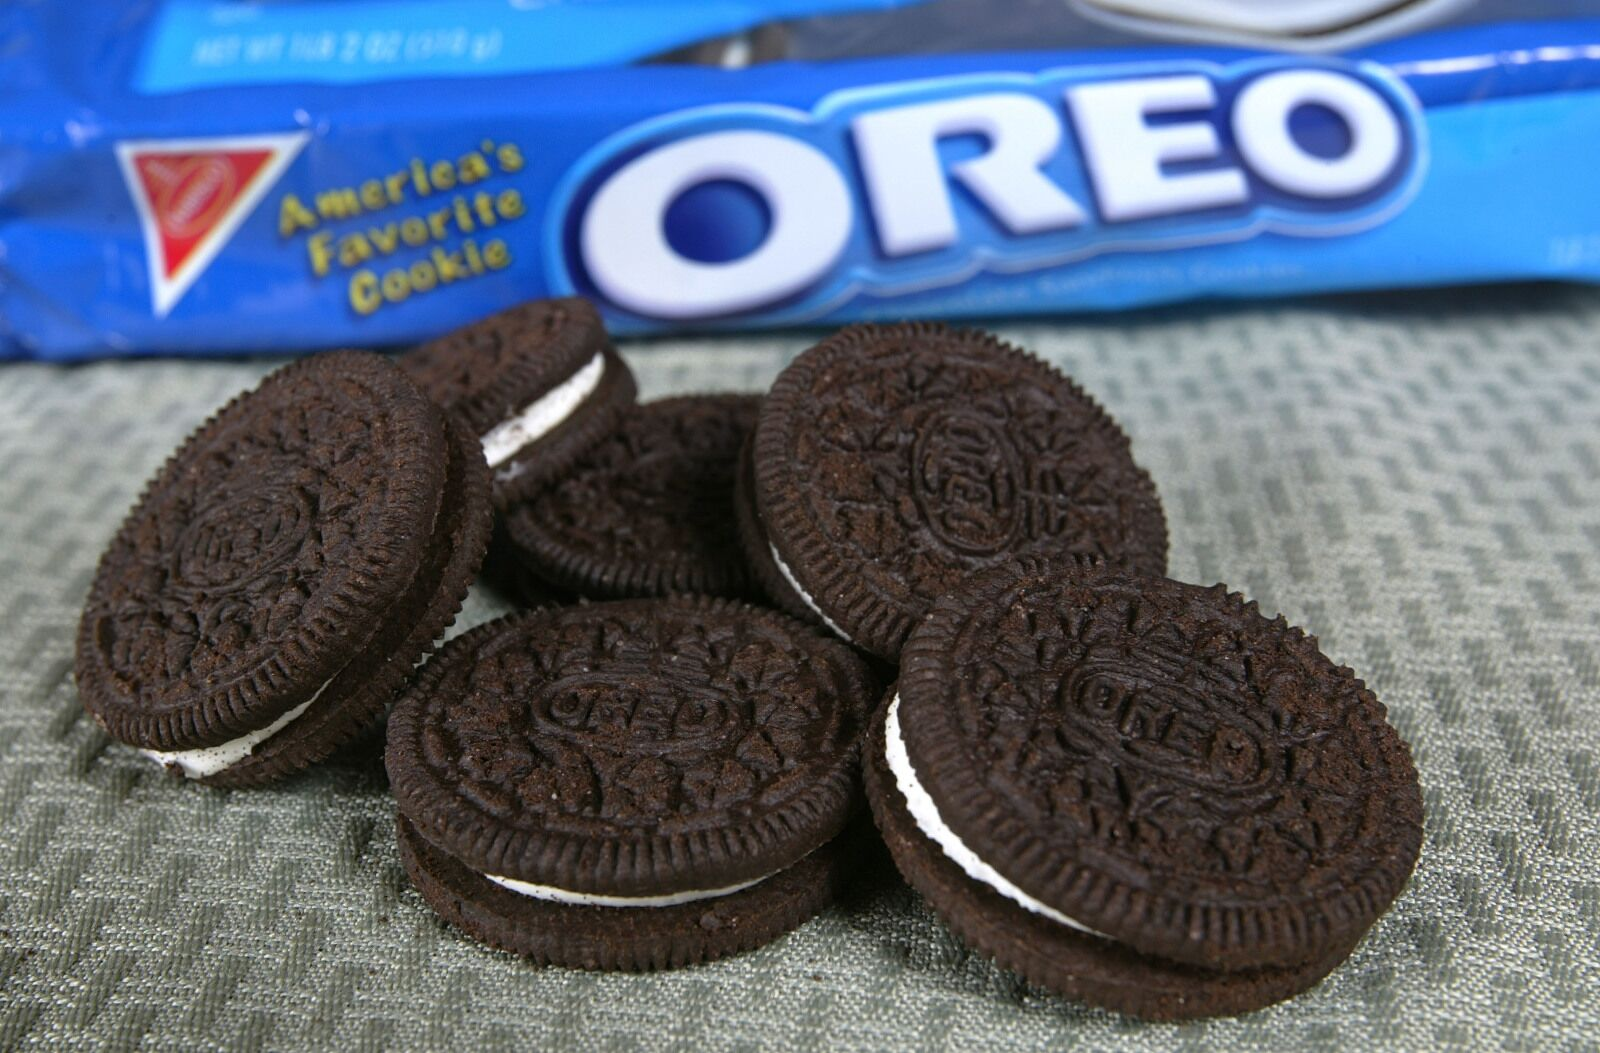 When and where can you find Mystery Oreo cookie flavors?